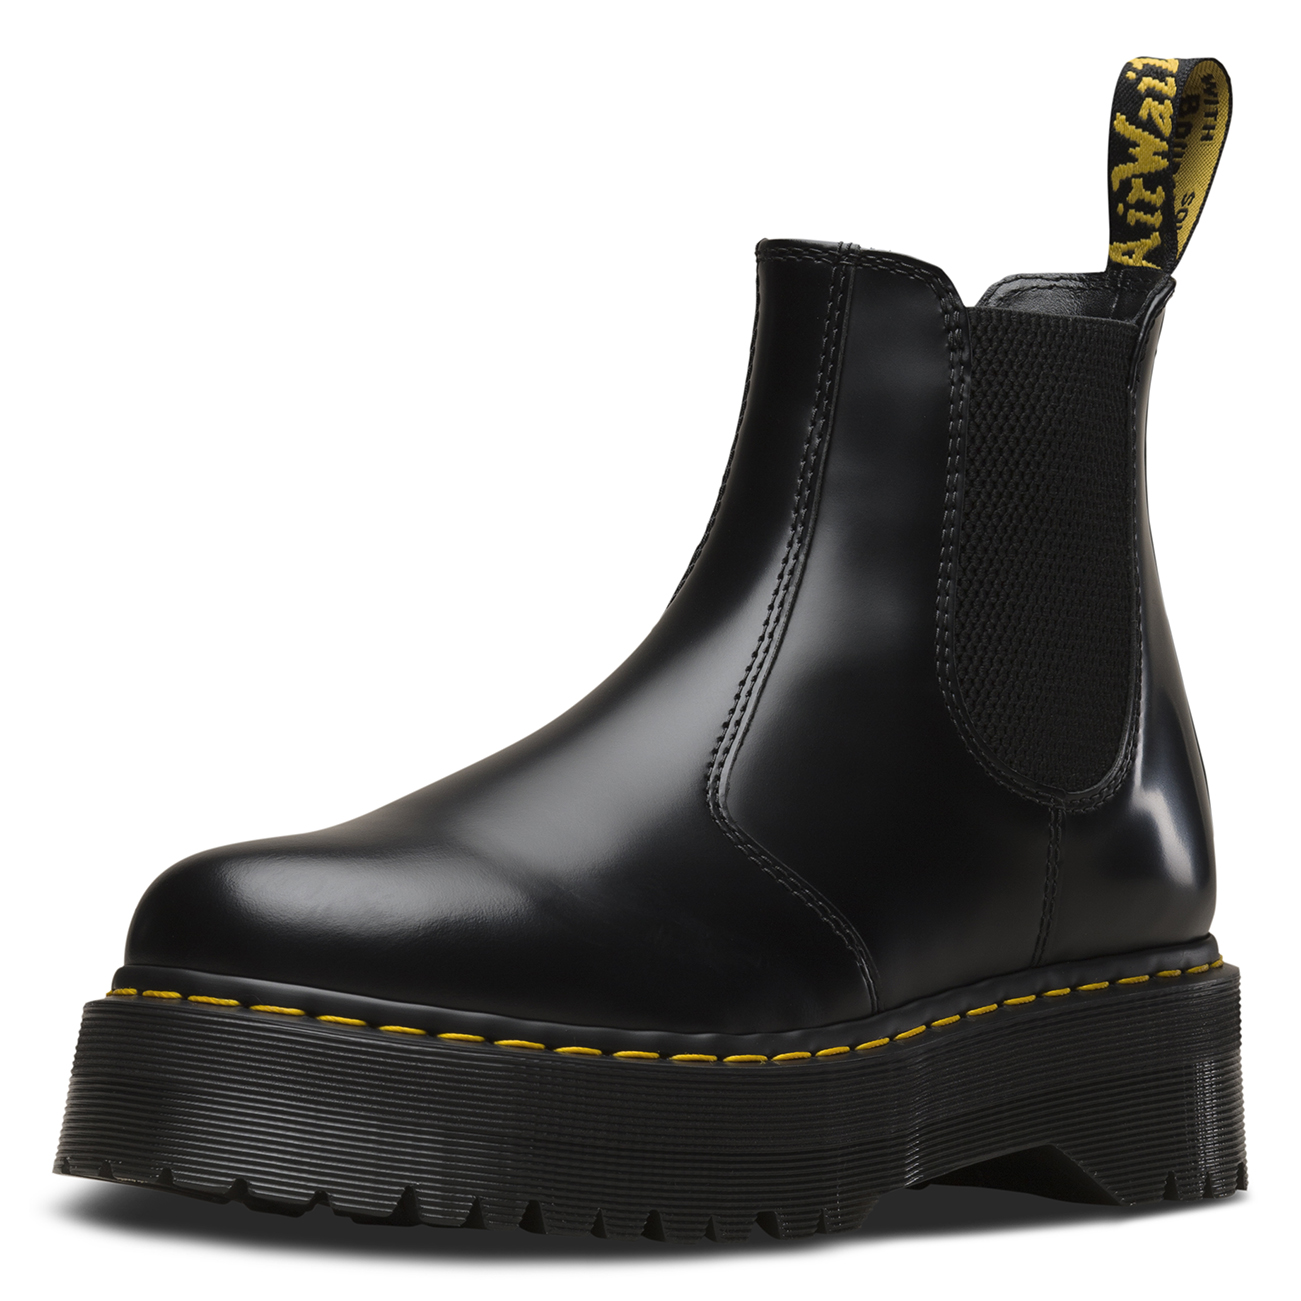 Unisex Adults Dr Martens 2976 Quad